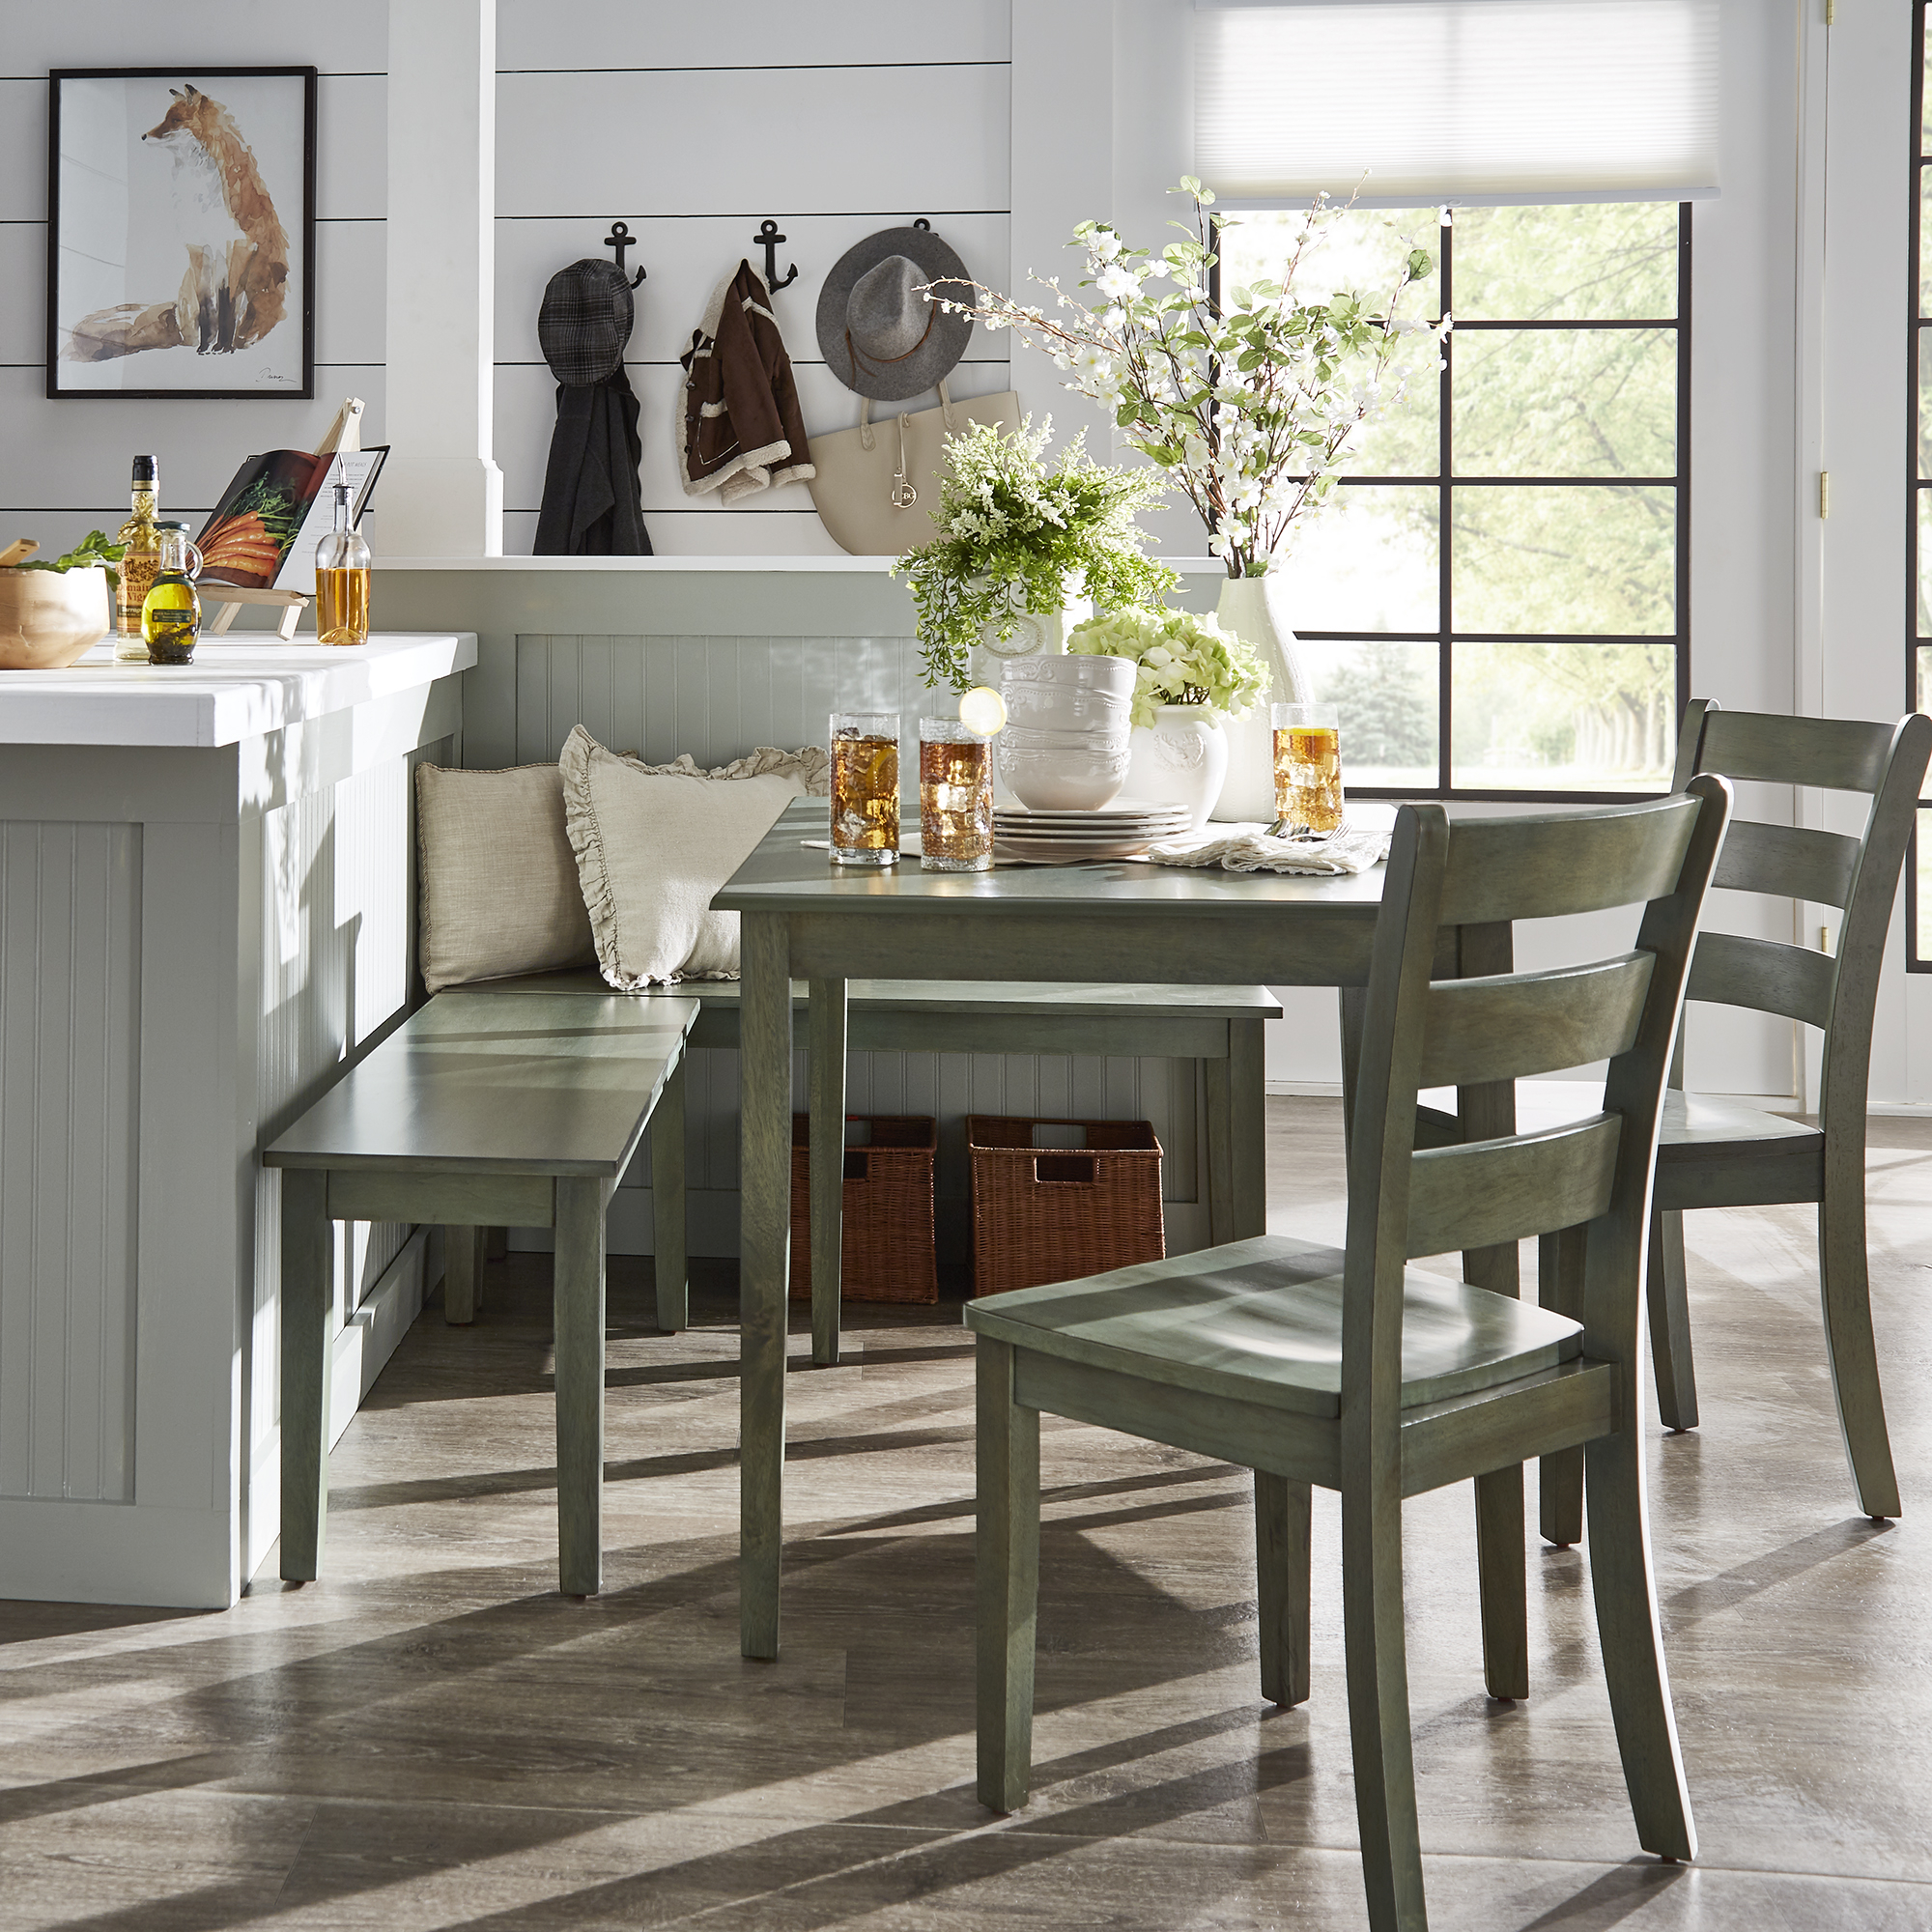 Most Recent 5 Piece Breakfast Nook Dining Sets With Weston Home Lexington 5 Piece Breakfast Nook Dining Set, Rectangular (#10 of 20)